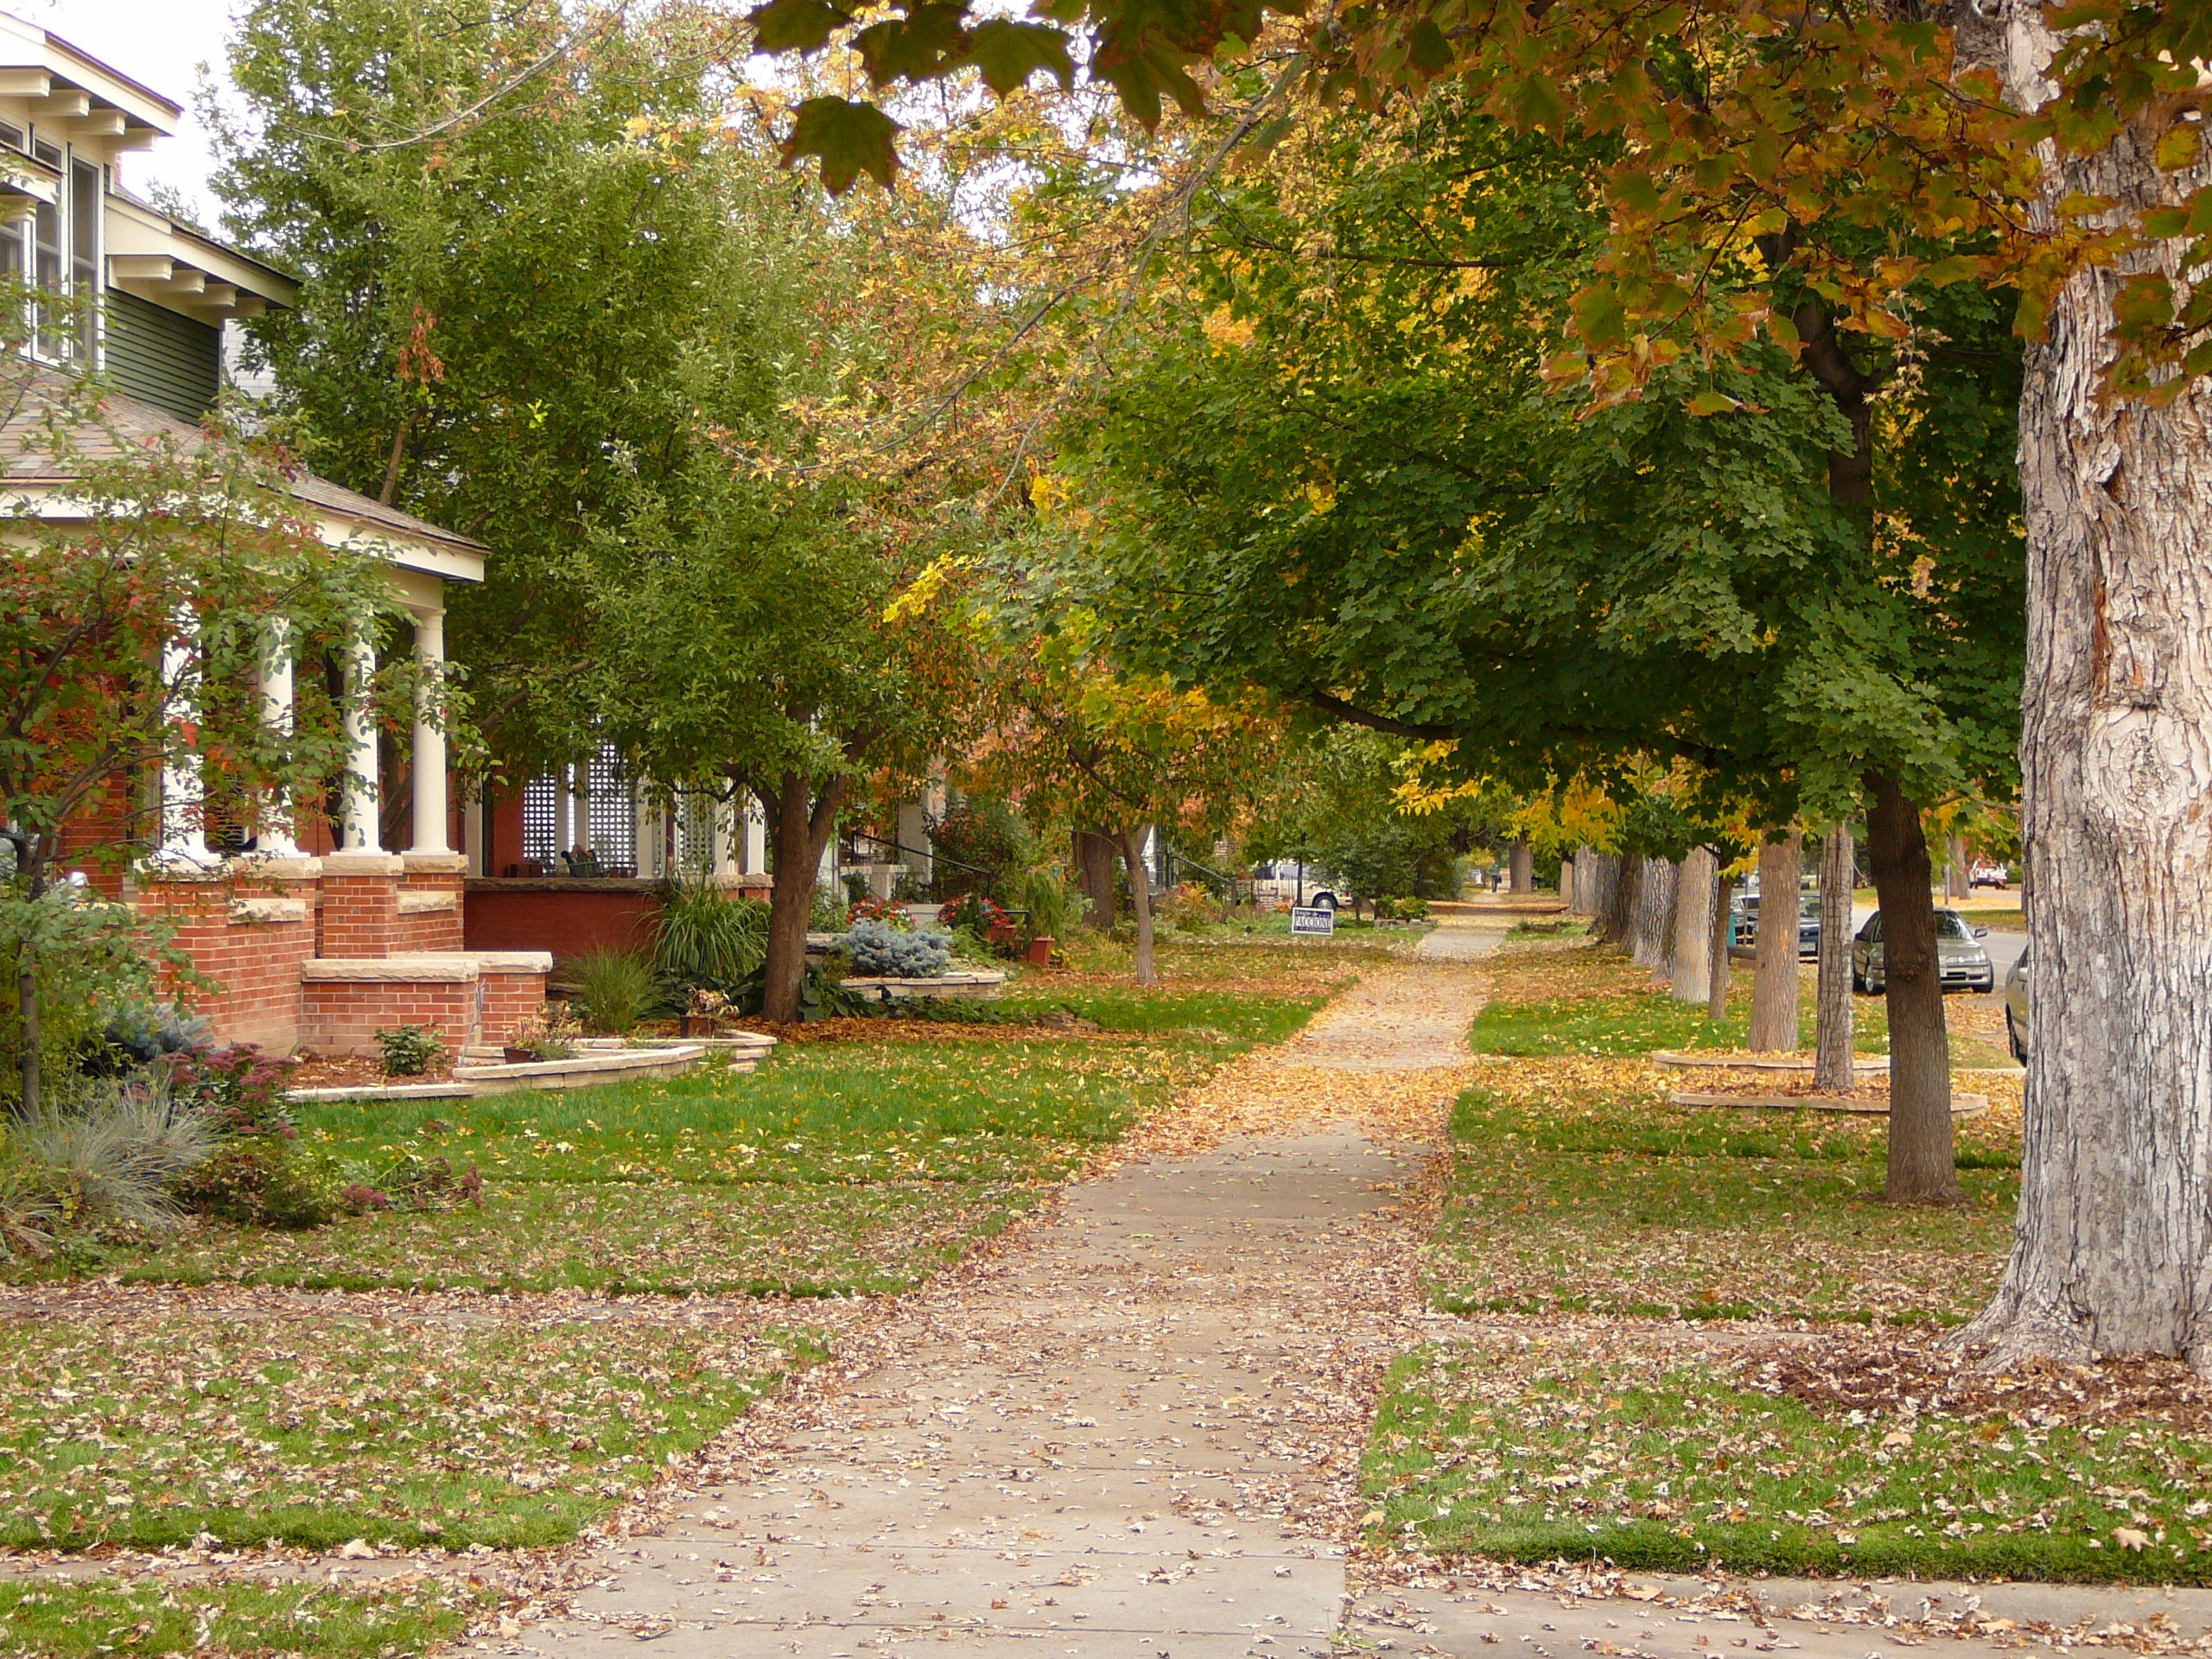 On Mountain Ave, Fort Collins, Colorado – Paul L Dineen – flickr